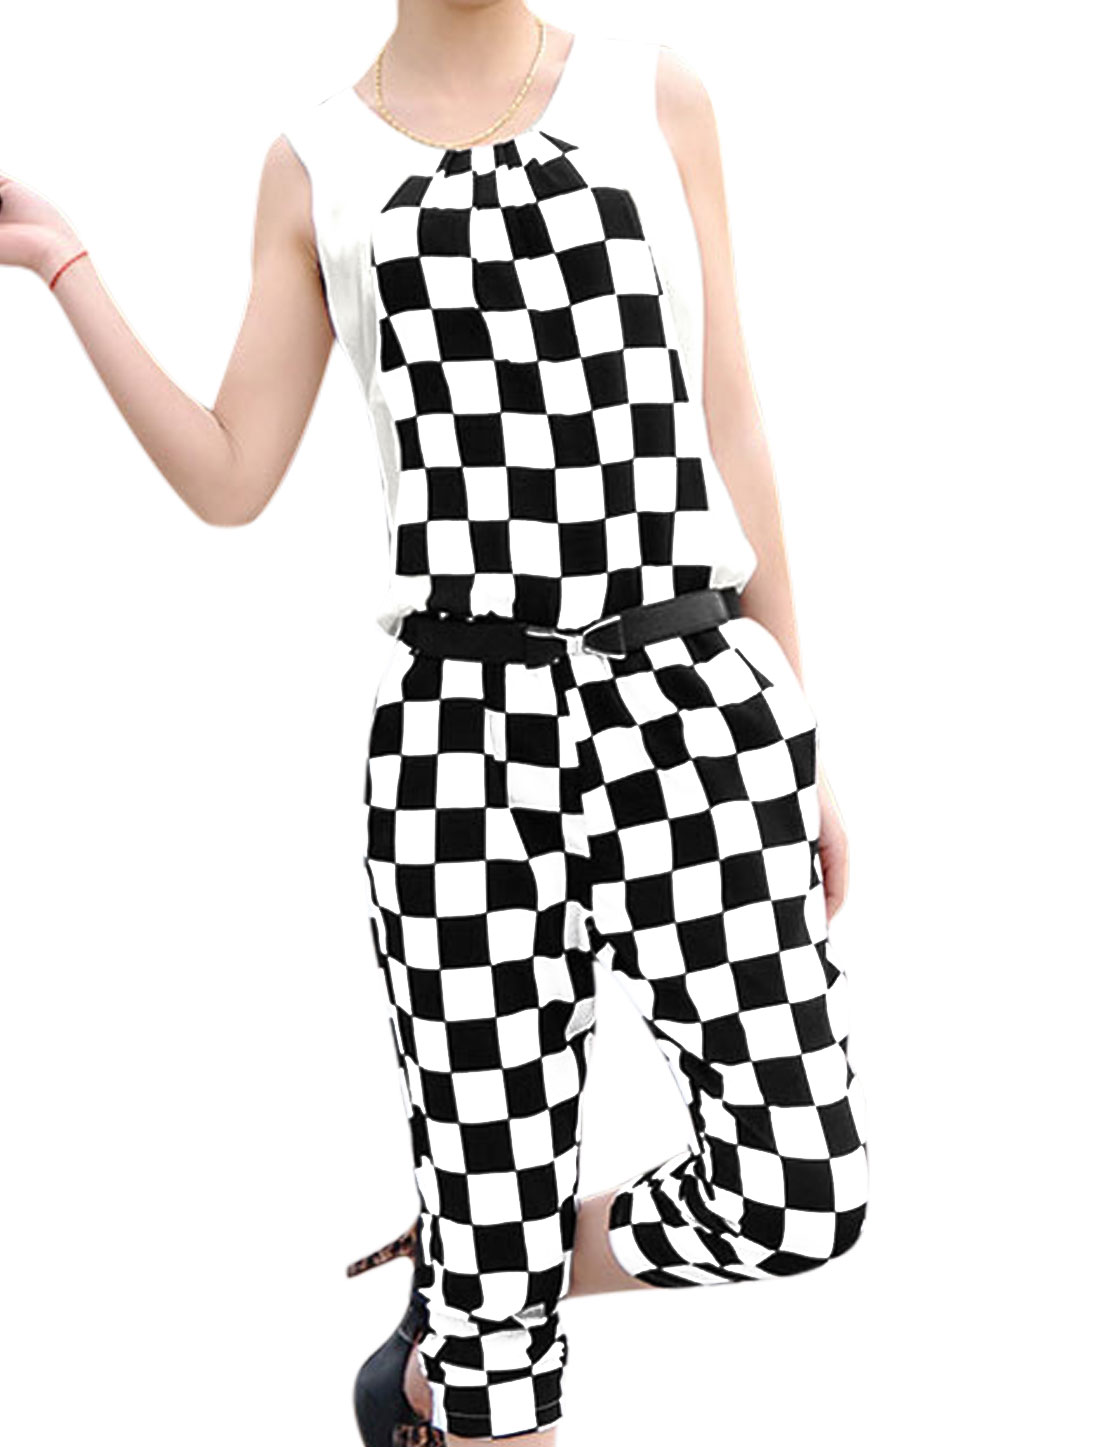 Lady Plaids Pattern Hidden Zipper Back Jumpsuit w Waist Strap Black White XS